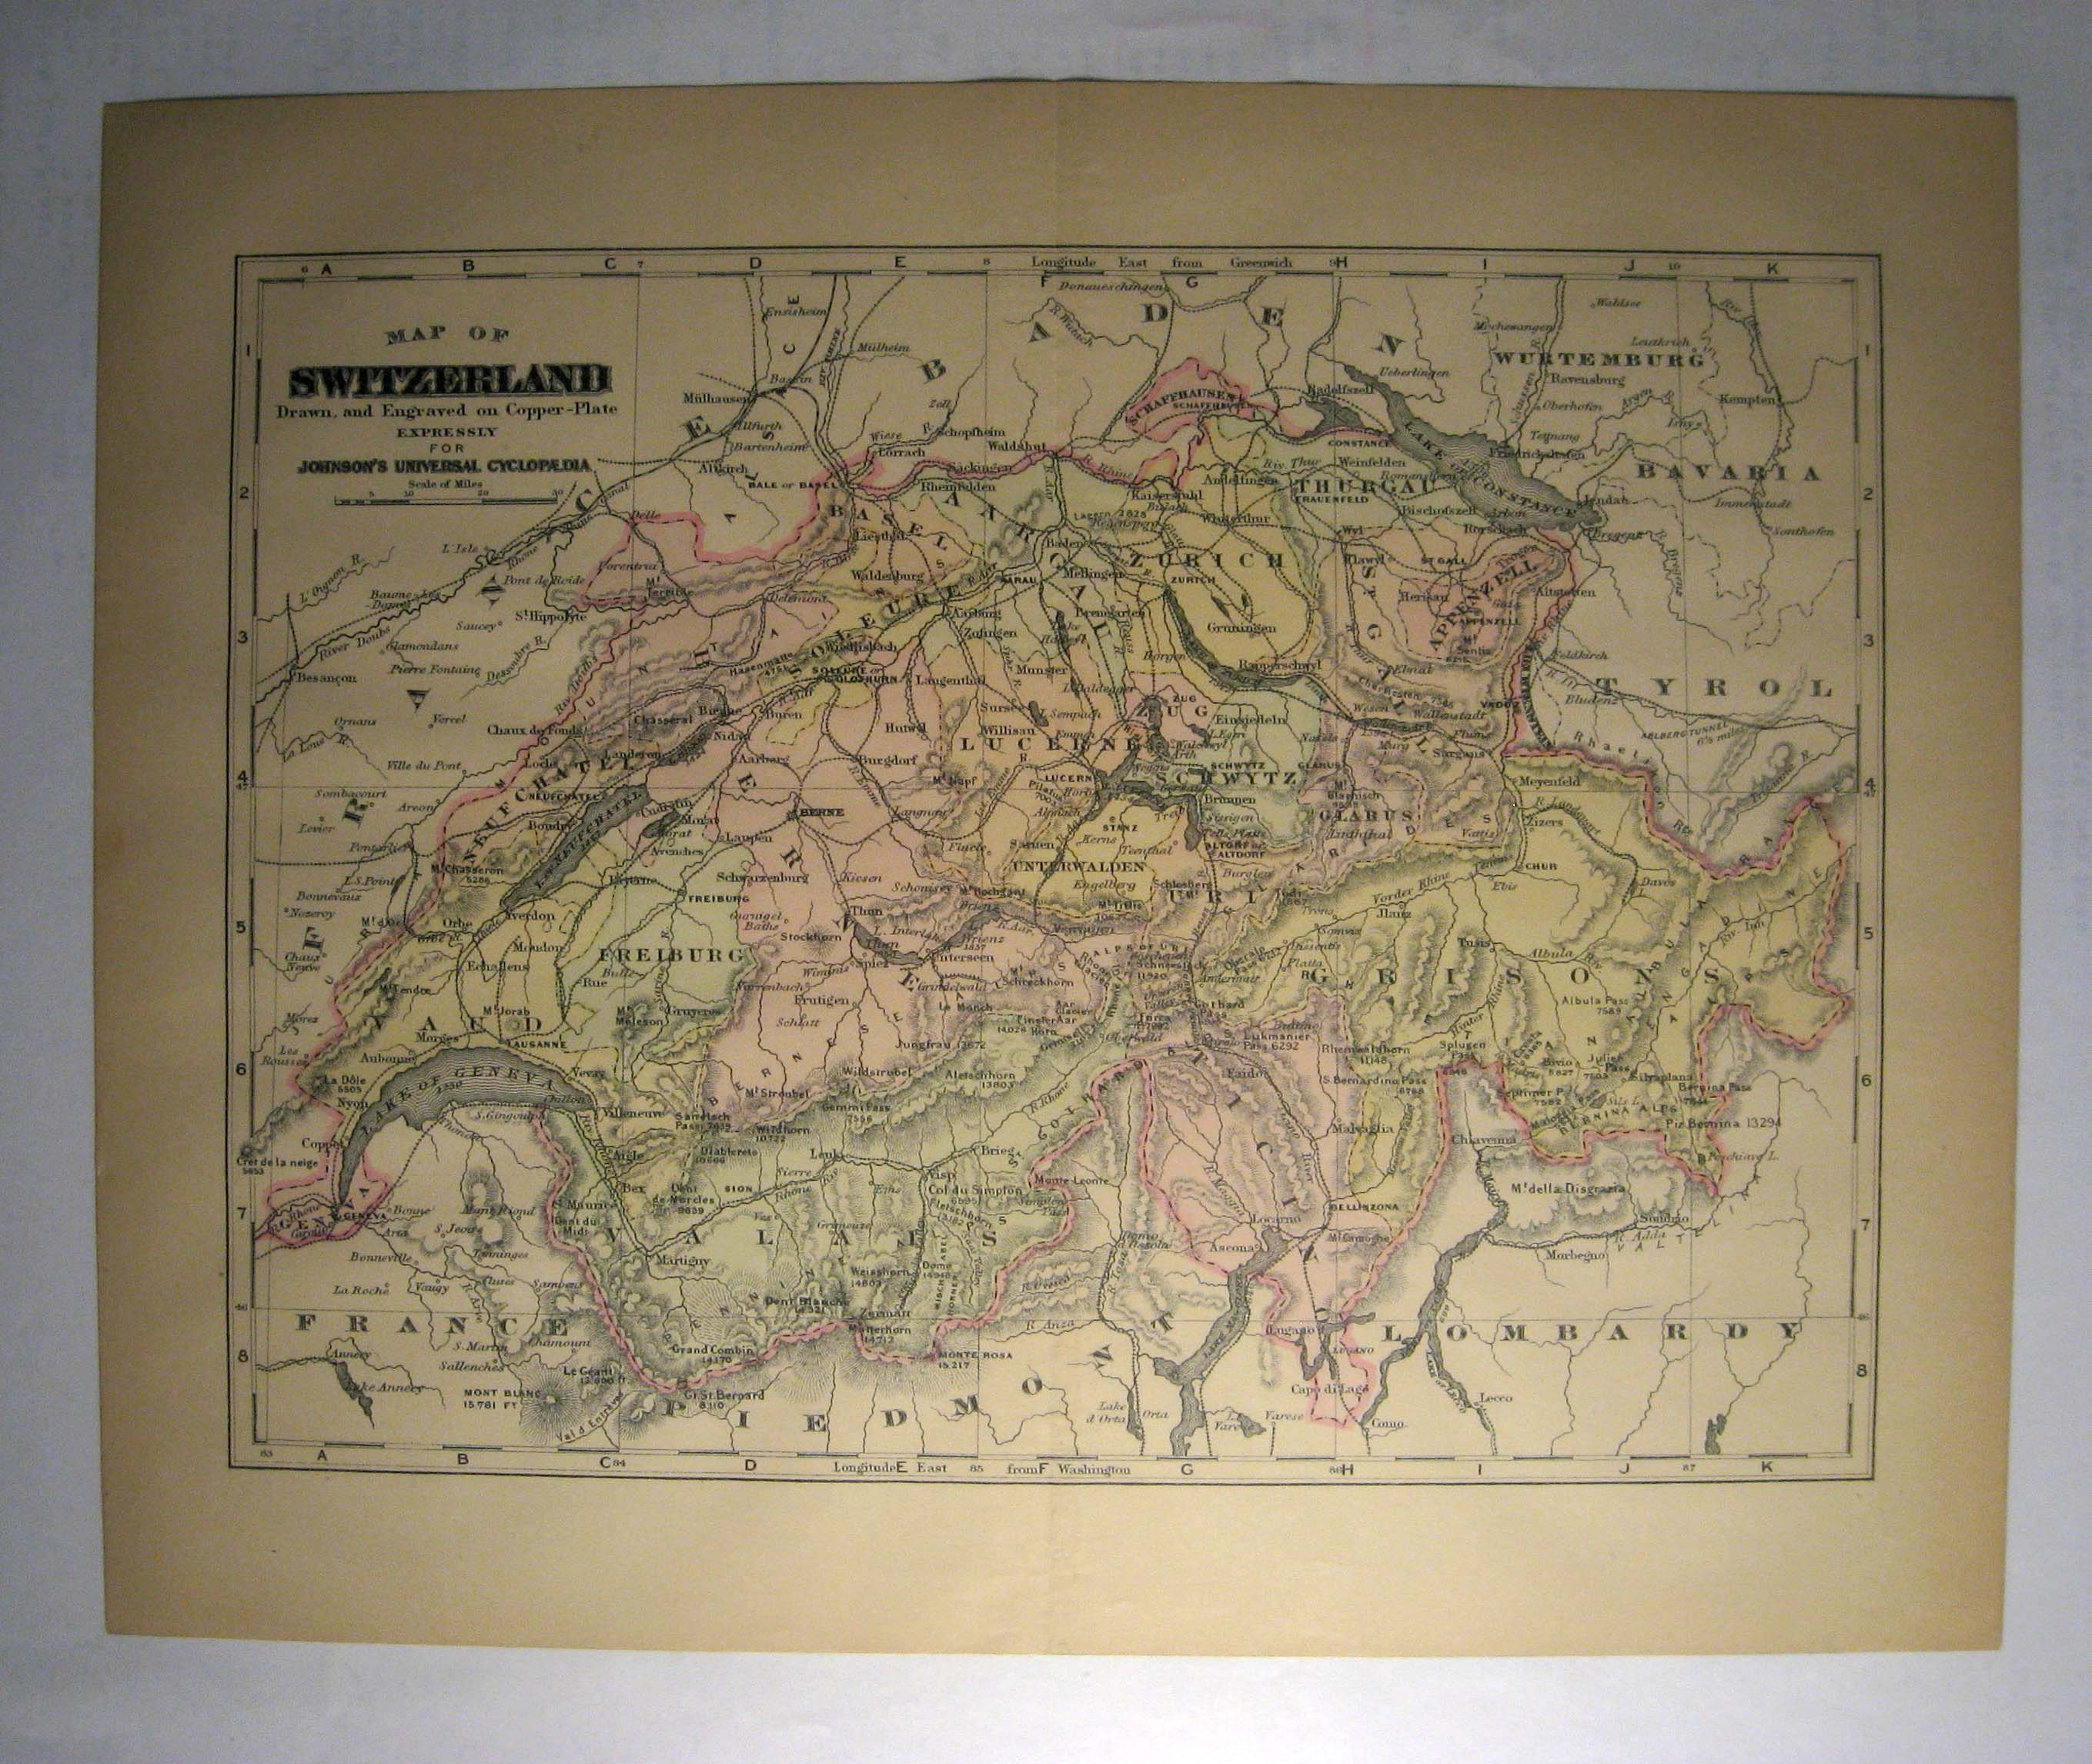 Johnson's  Map of Switzerland -  Original (1897)